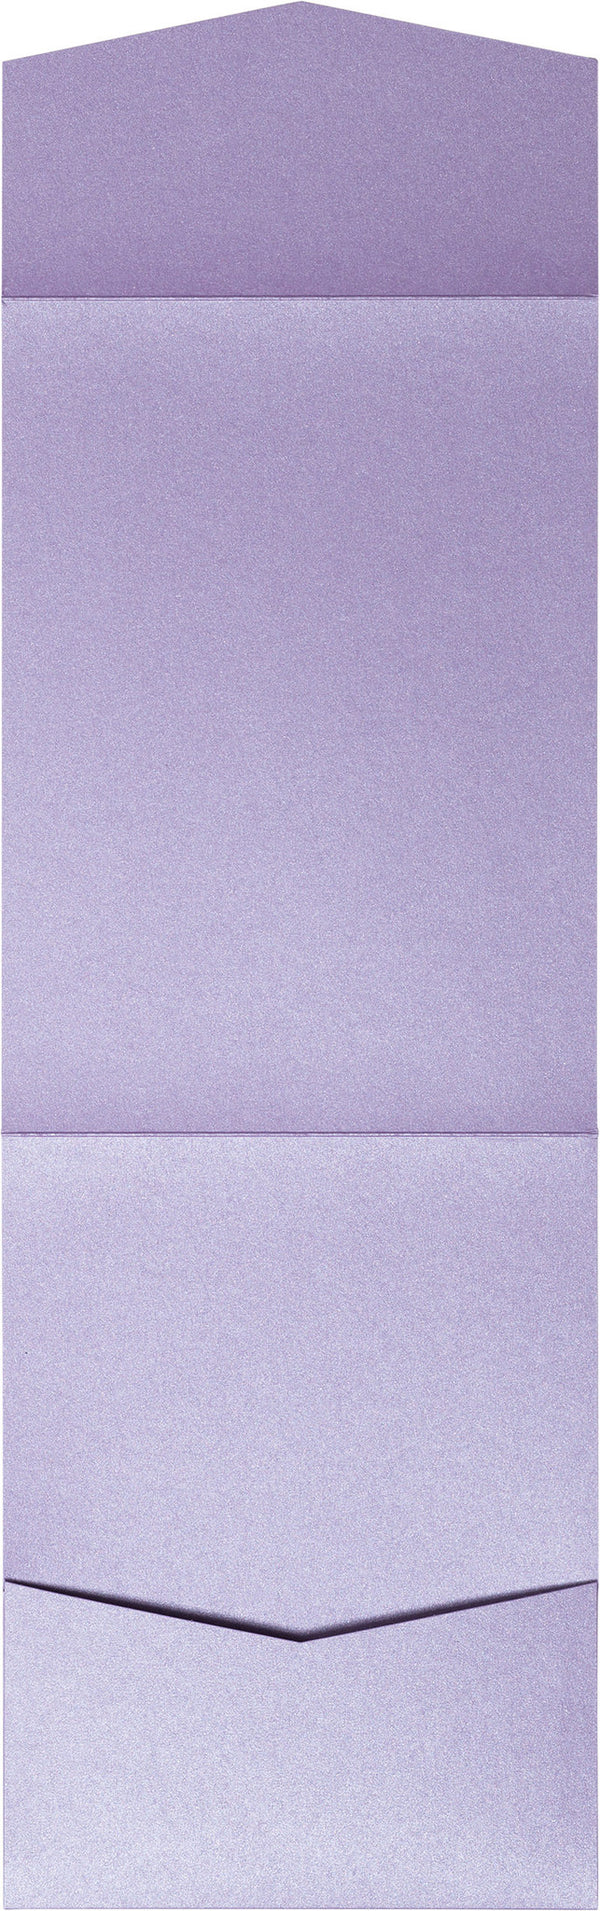 Lavender Metallic Pocket Invitation Card, A7 Cascade - Paperandmore.com